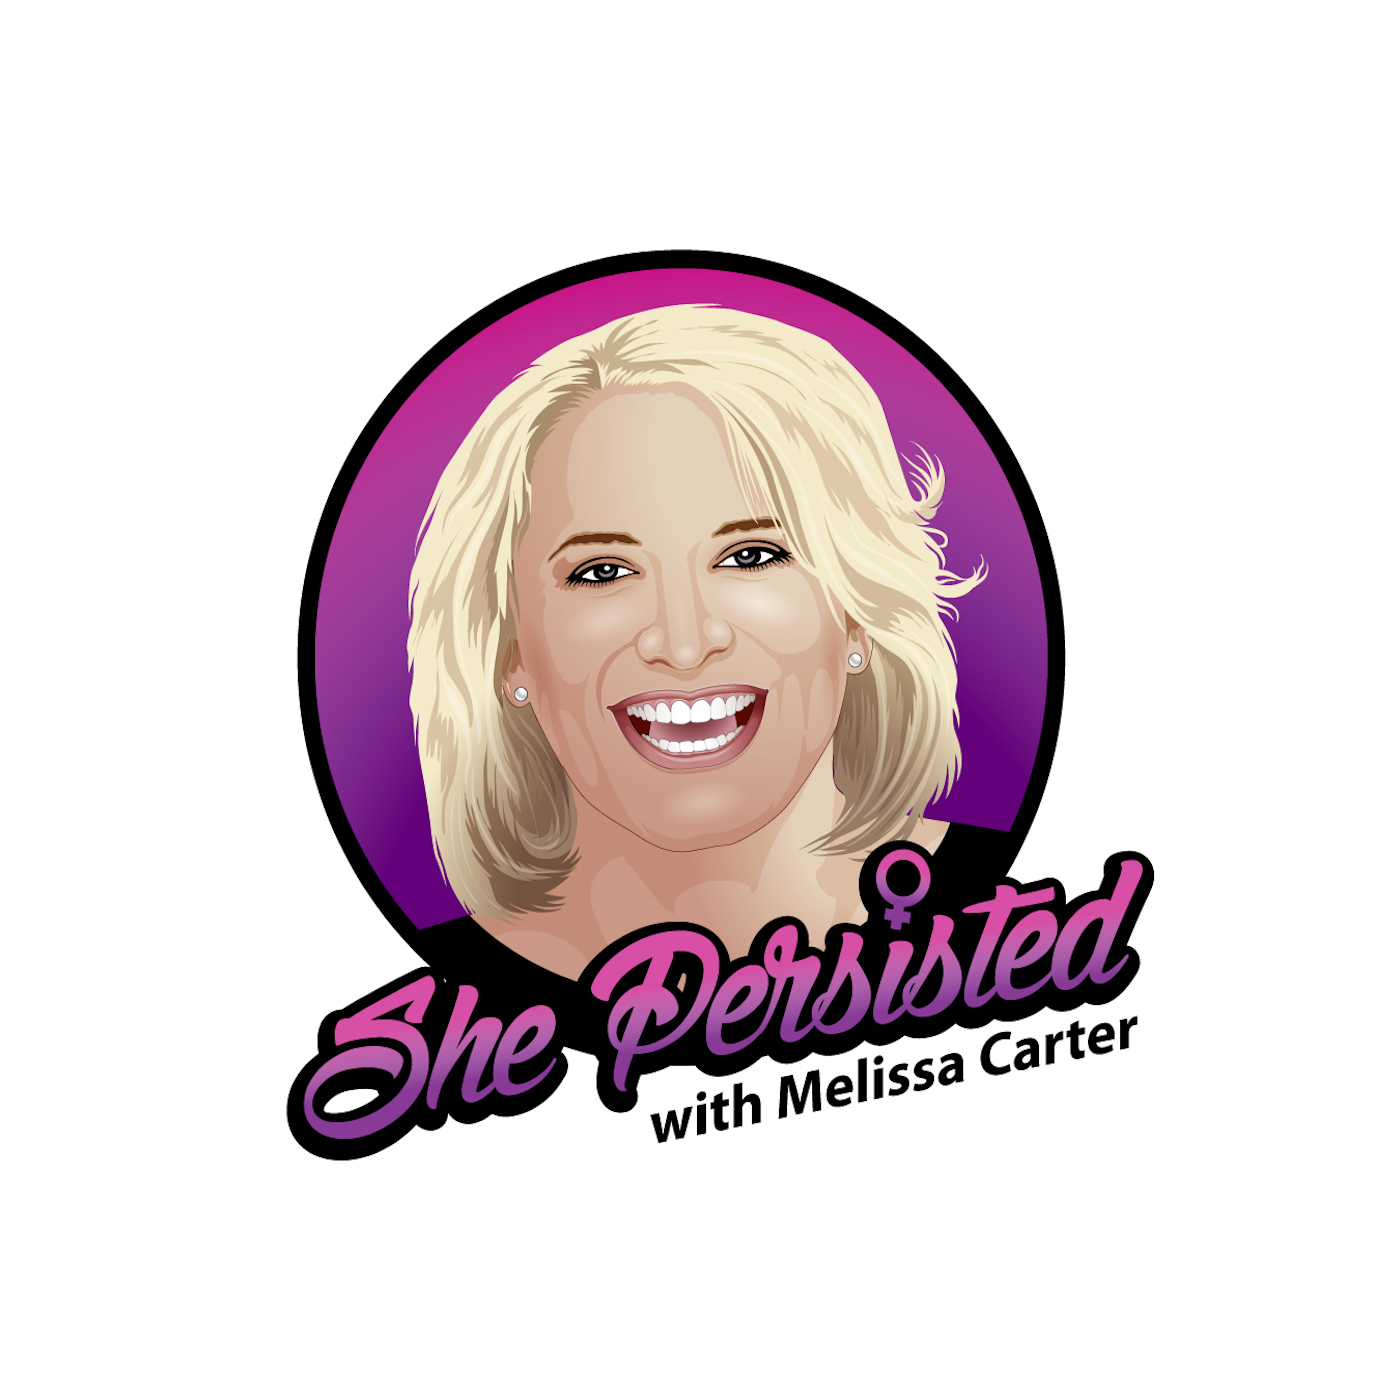 She Persisted with Melissa Carter 11-27-2017